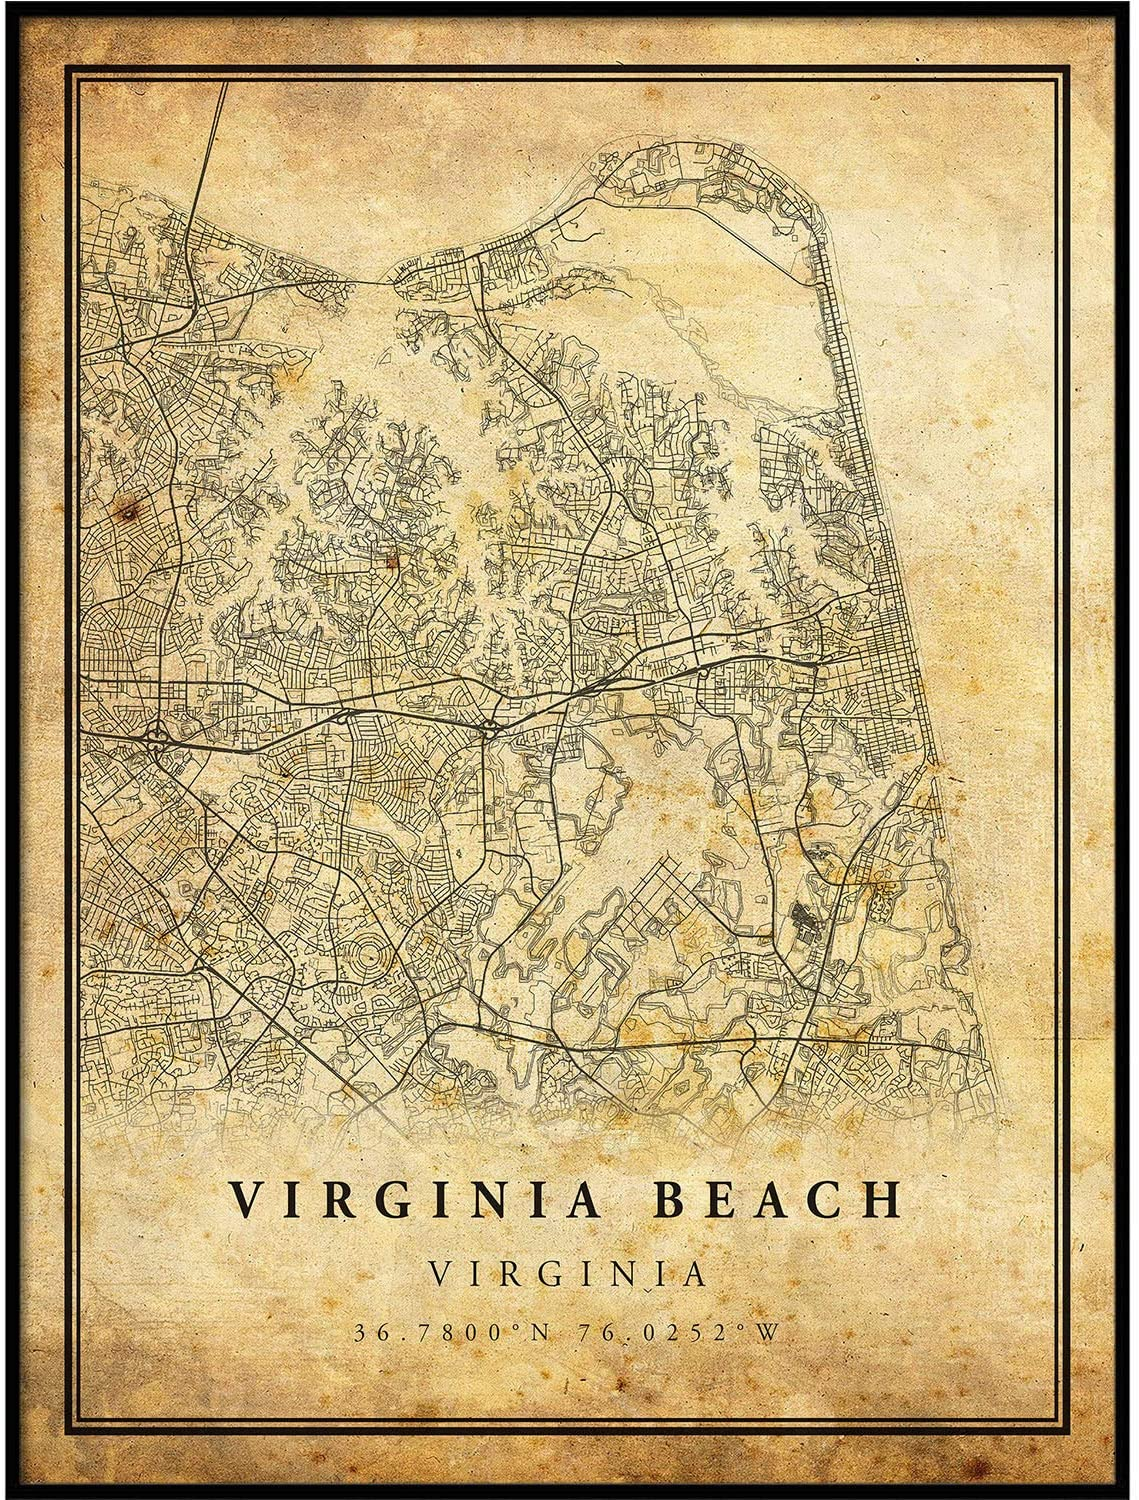 Virginia Beach map Vintage Style Poster Print | Old City Artwork Prints | Antique Style Home Decor | Virginia Wall Art Gift | map Prints 8.5x11